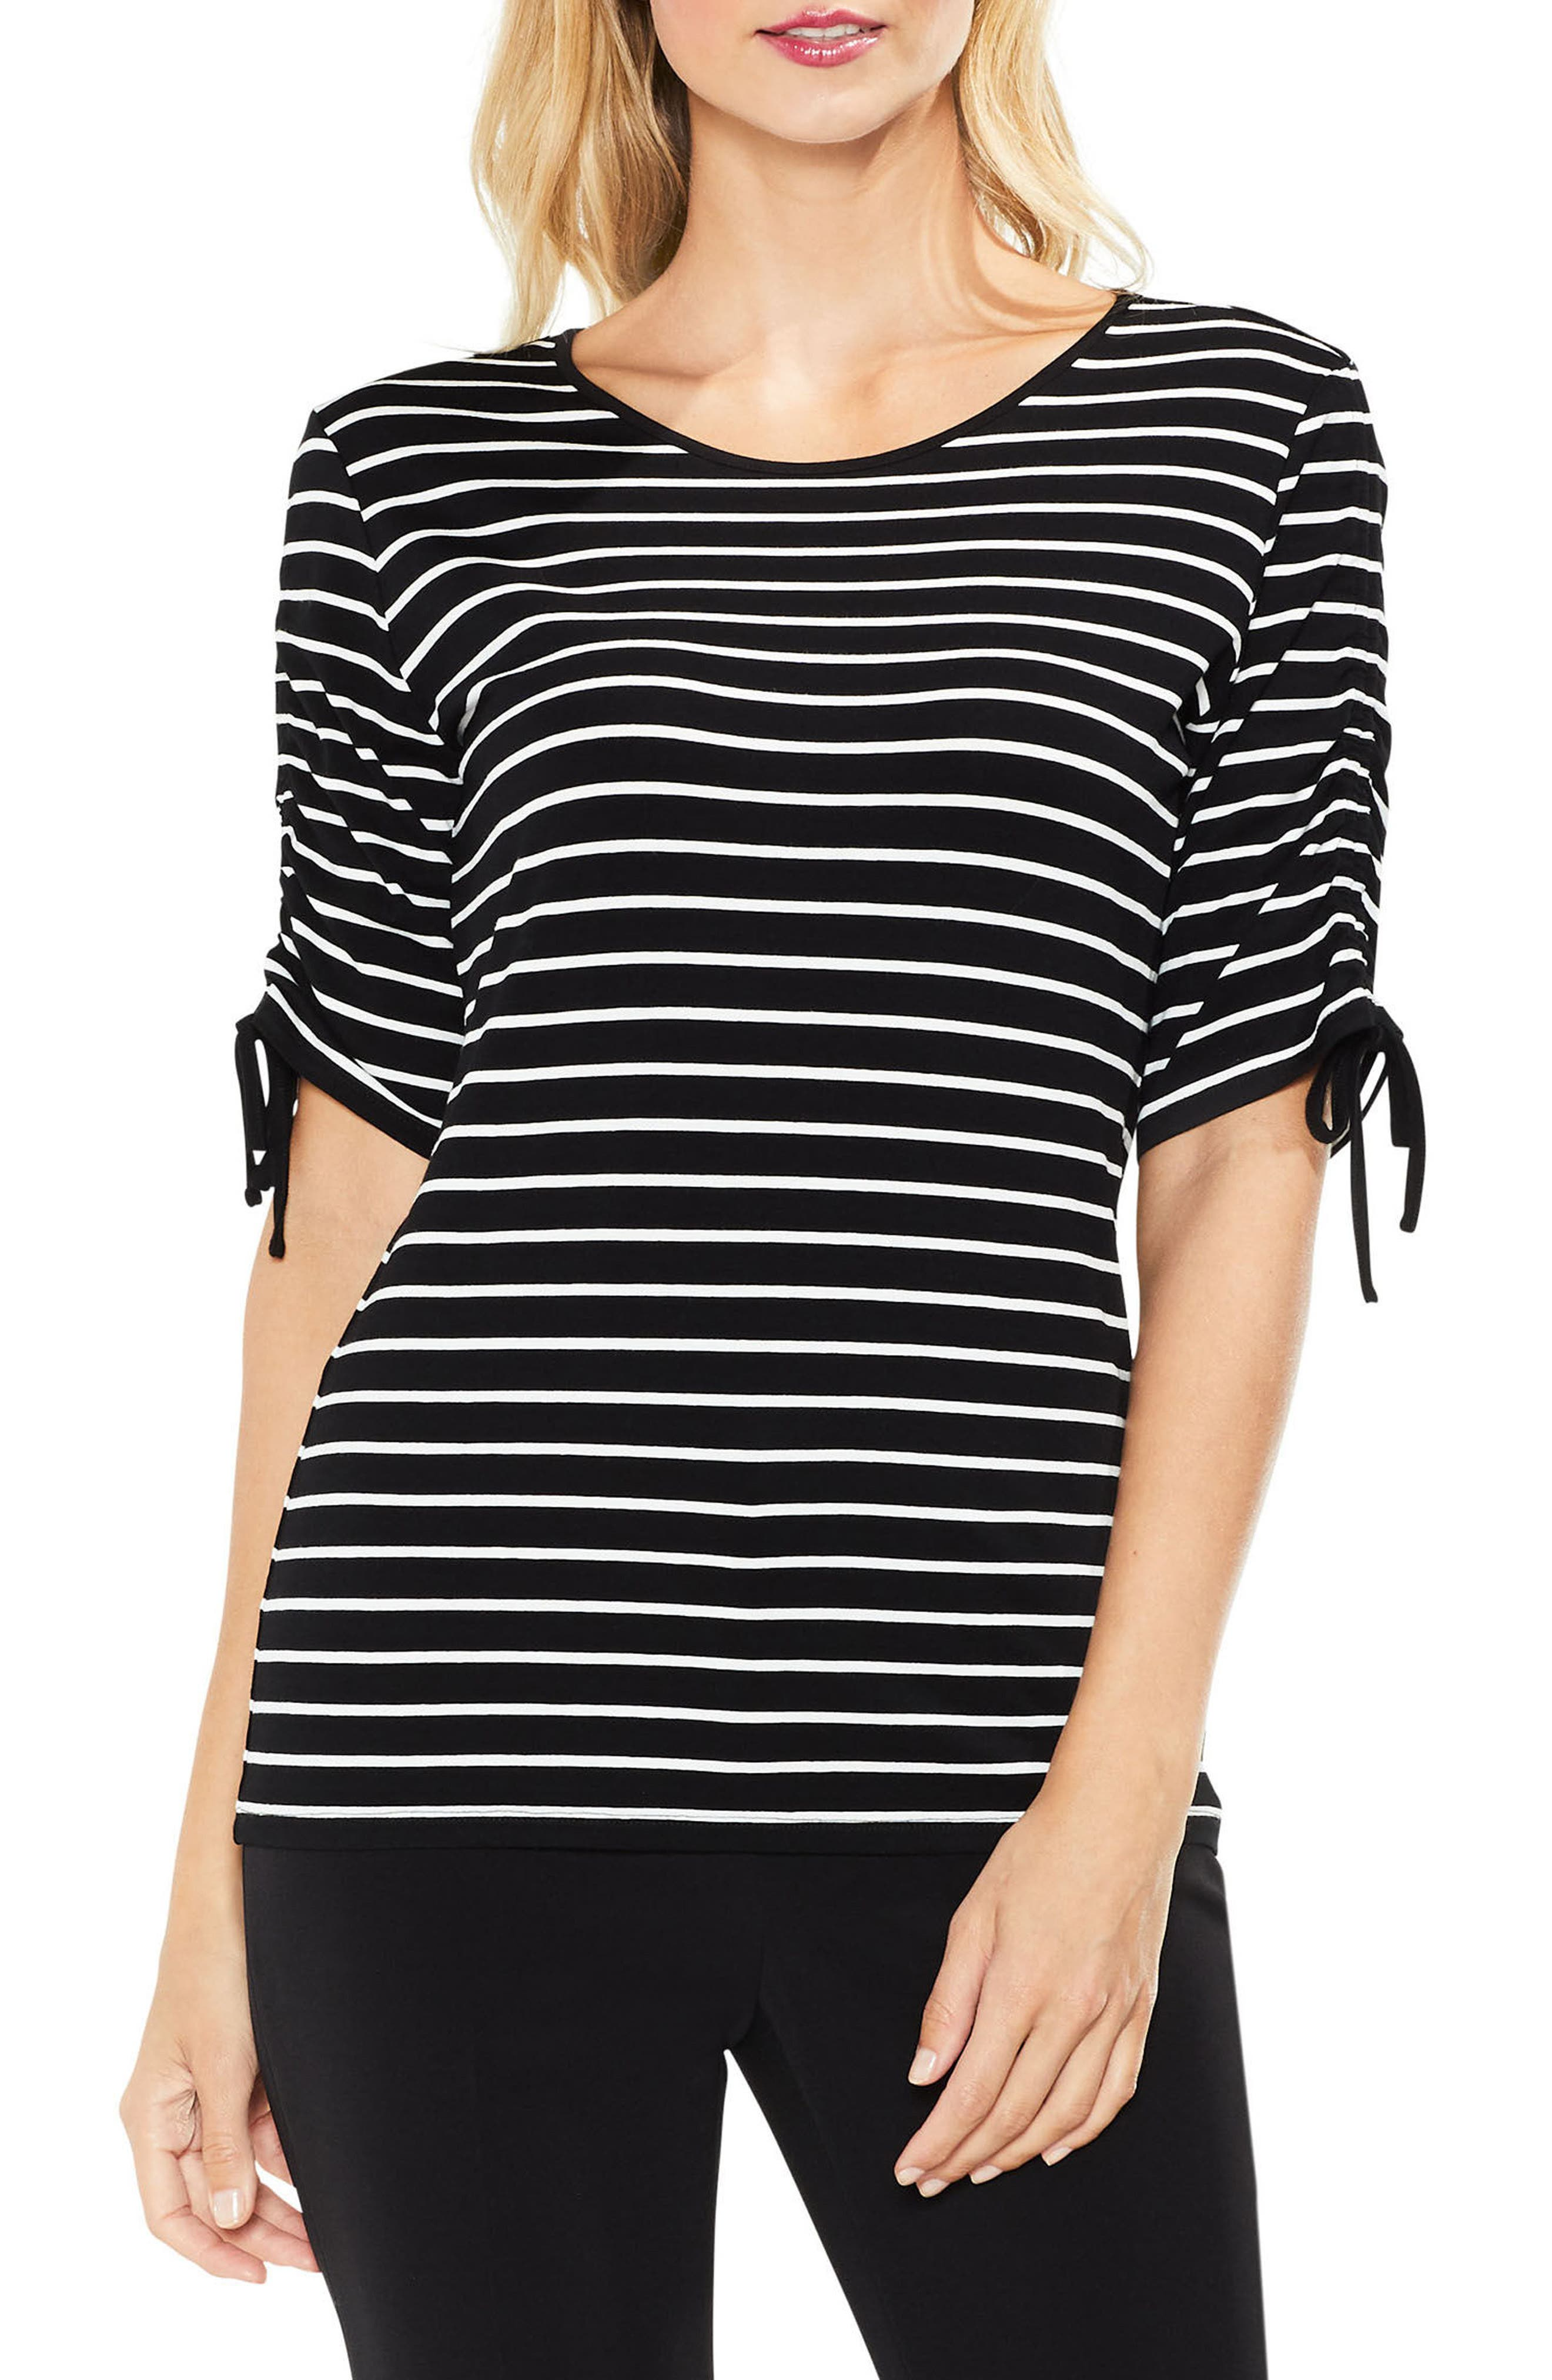 Alternate Image 1 Selected - Vince Camuto Drawstring Sleeve Stripe Top